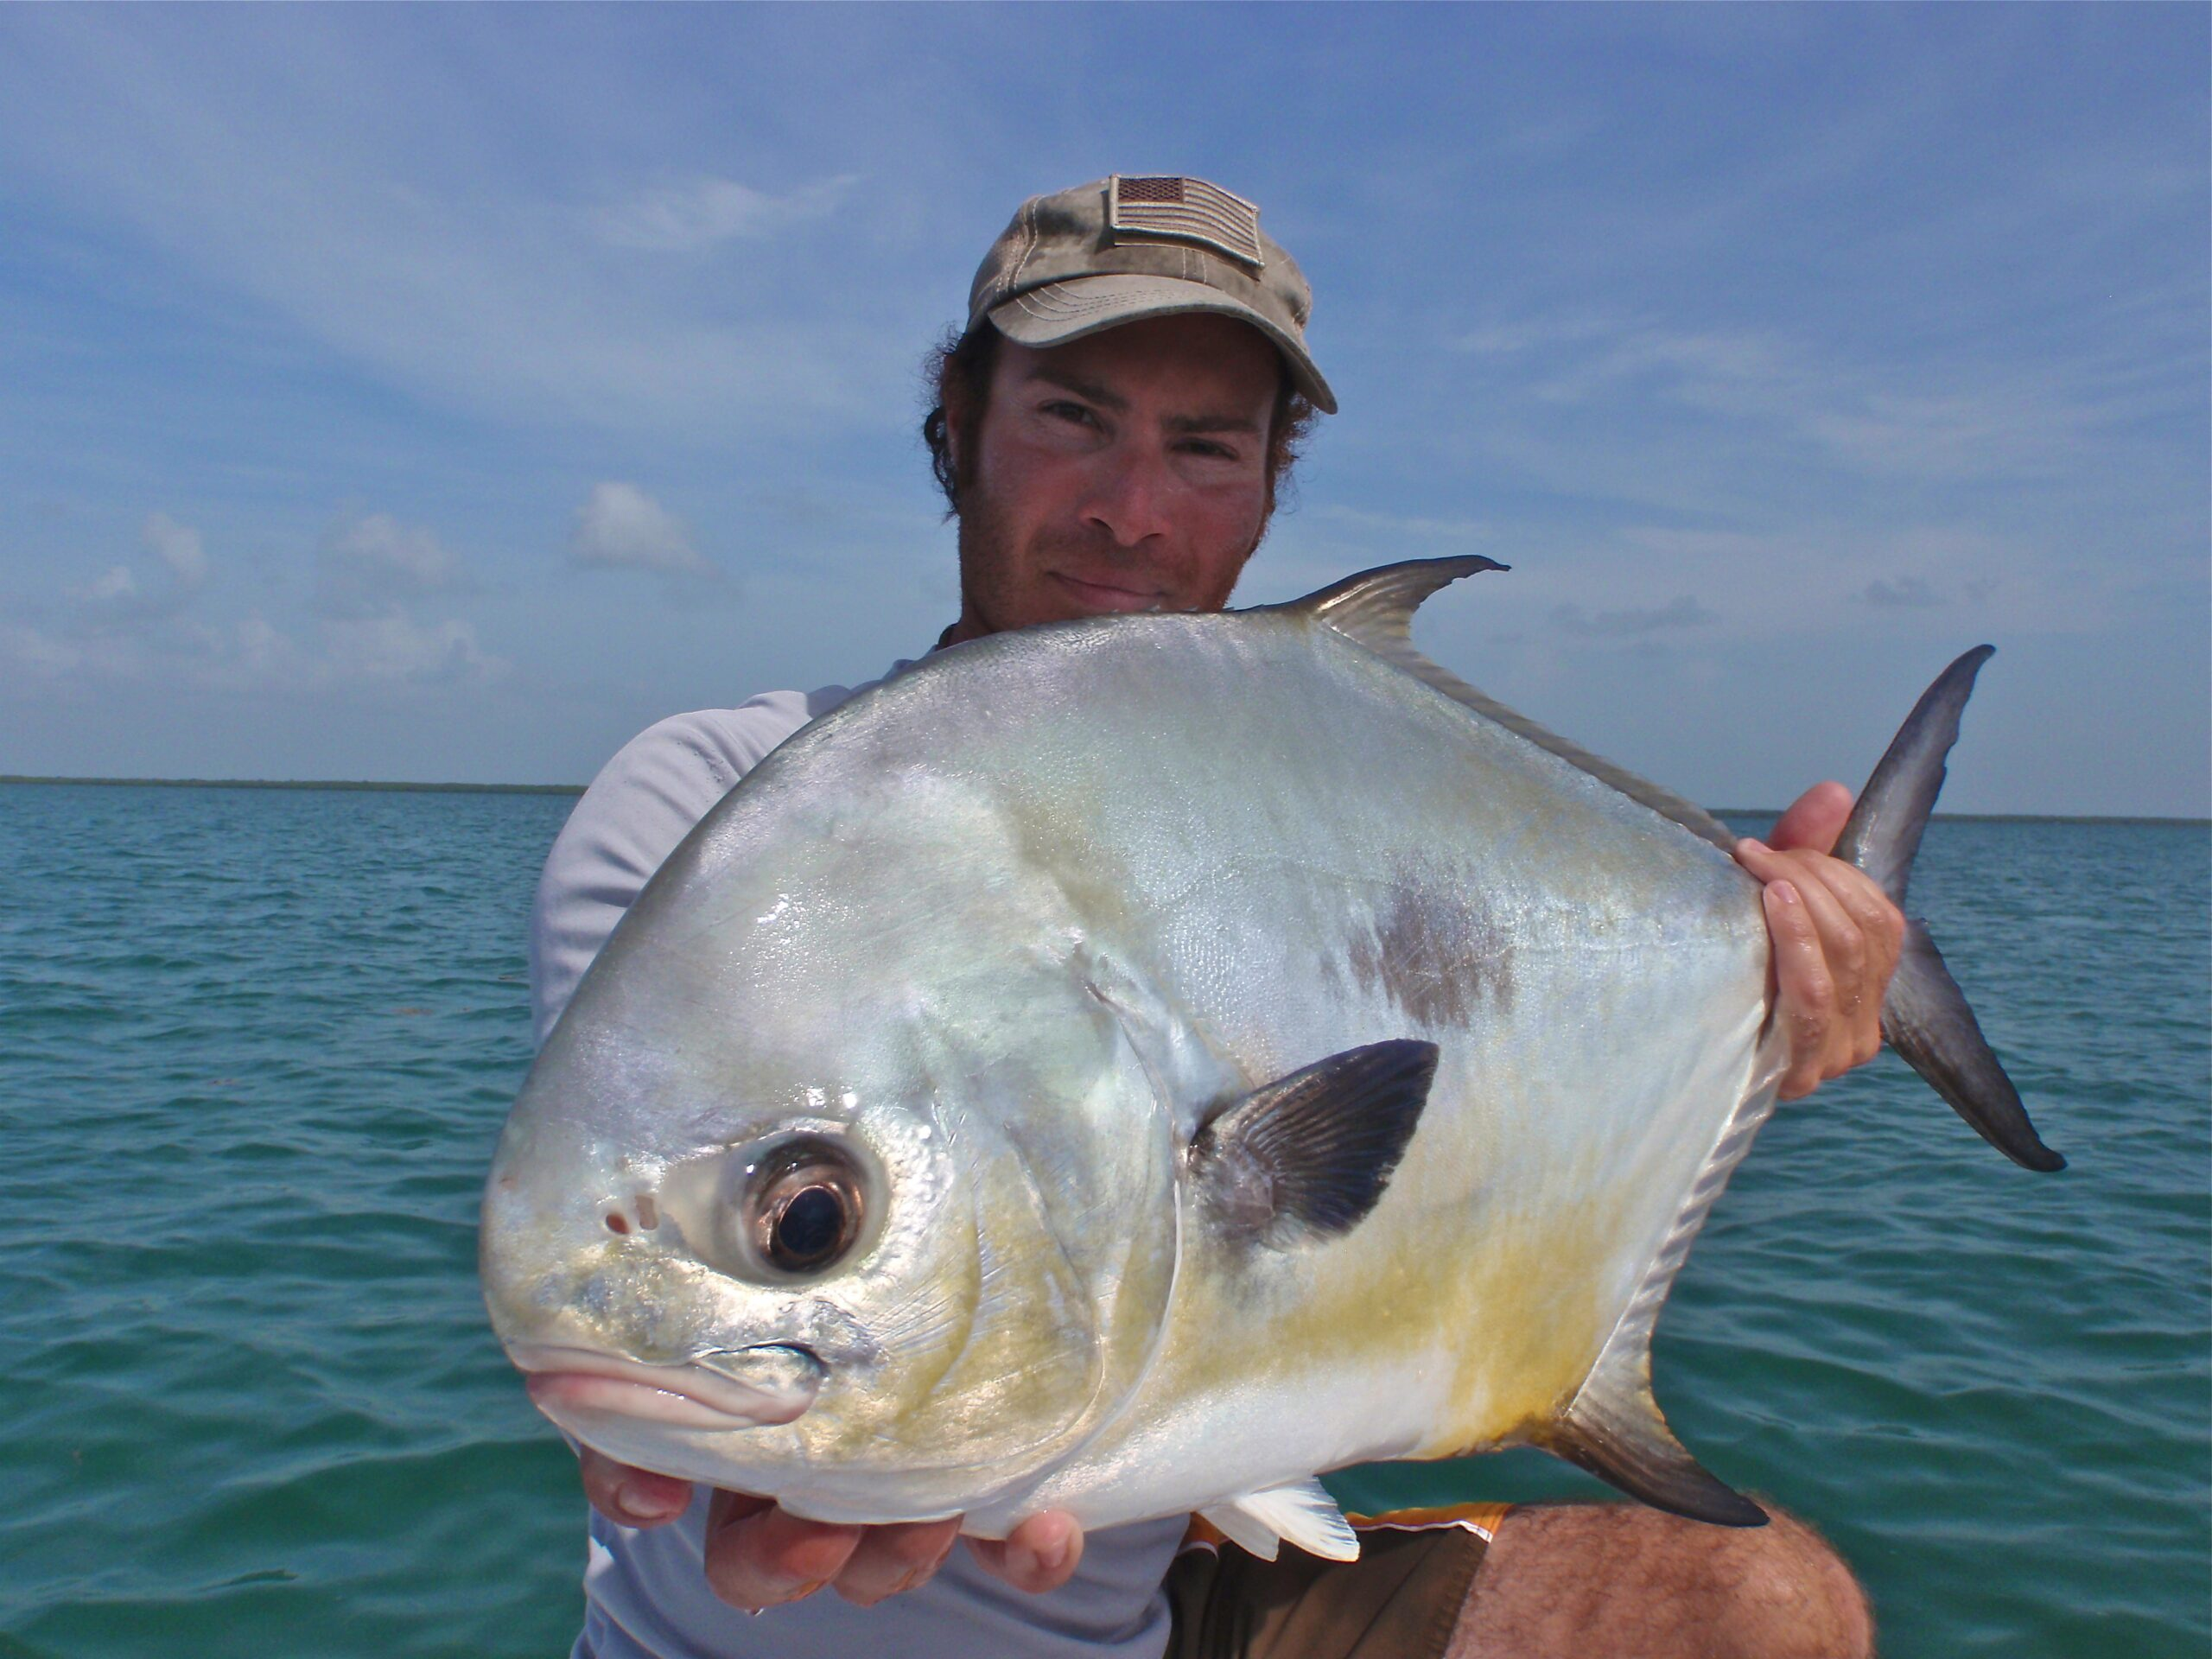 Biscayne bay permit with capt raul montoro flats fishing for Biscayne bay fishing